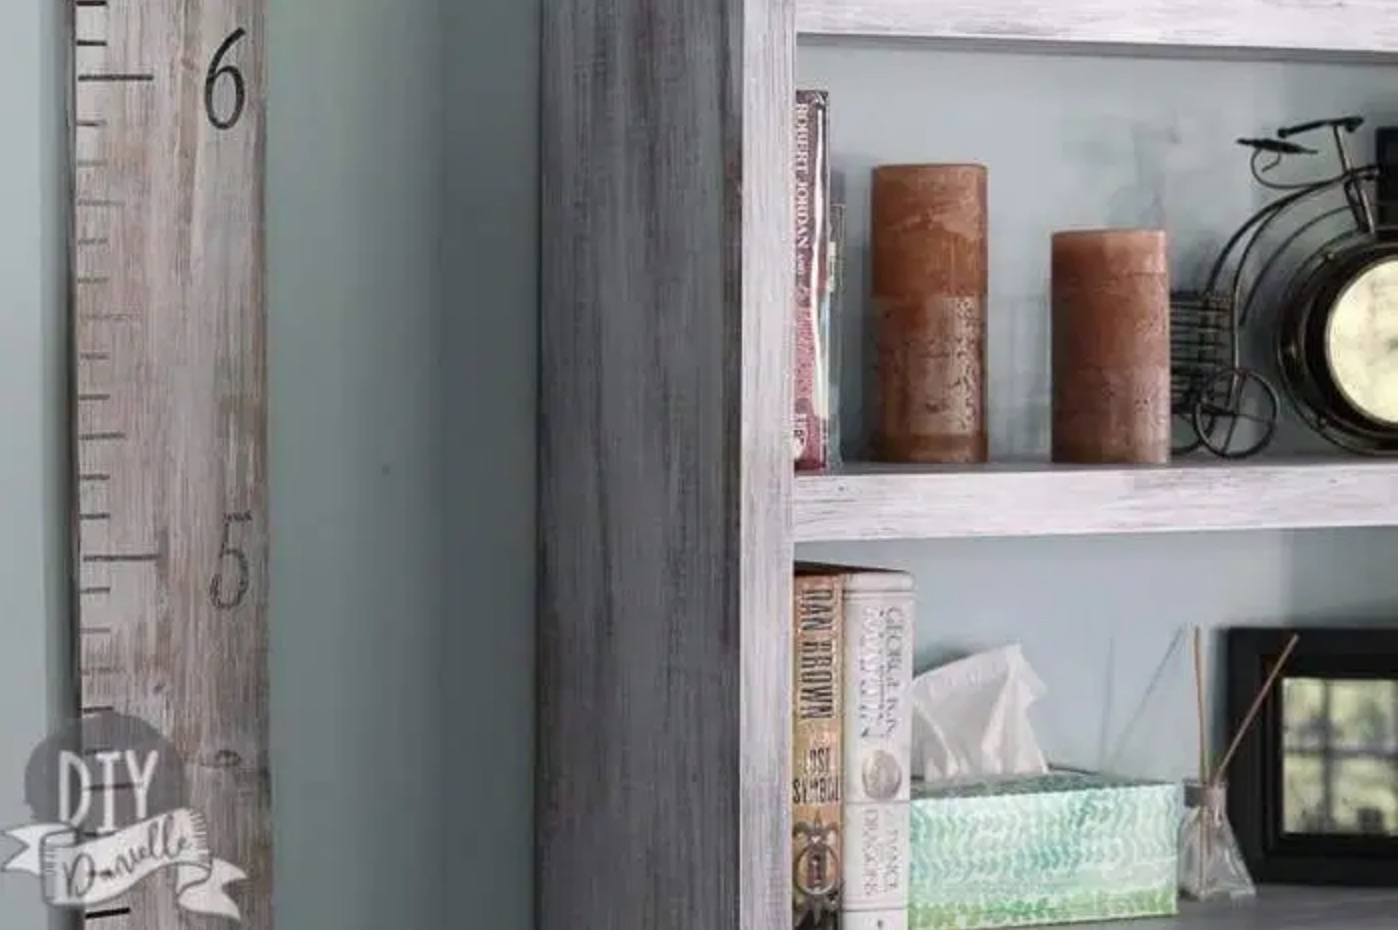 gray bookshelf with candles and books